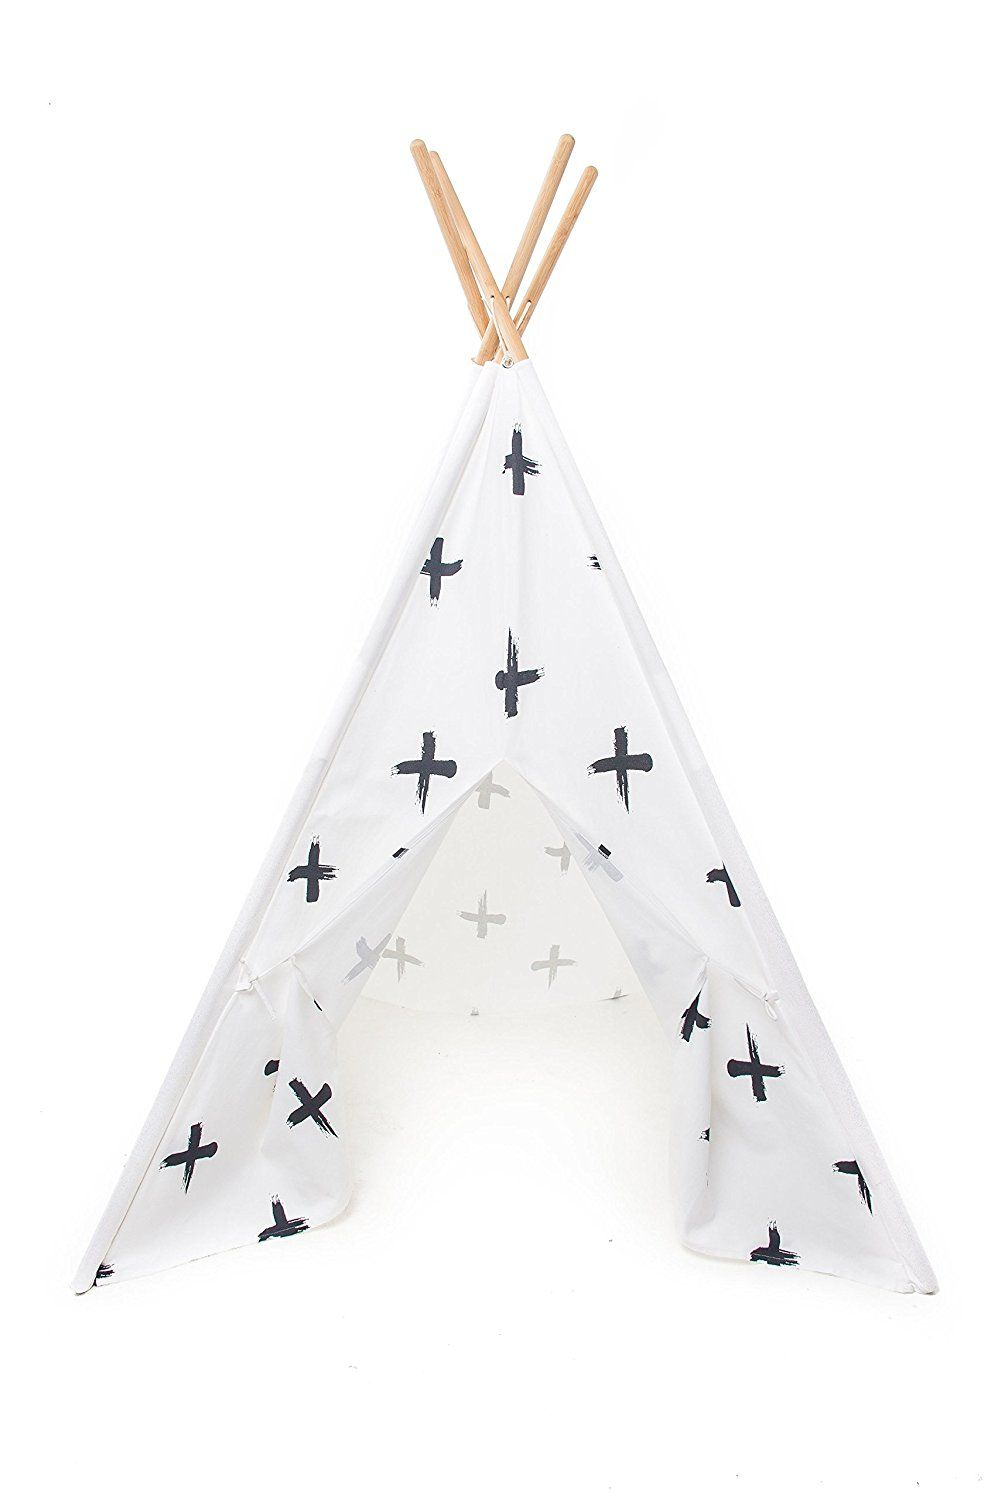 HOURS OF FUN – This play teepee will add fun to any room of the house. Let you kids use their imagination, and play with this teepee in many ways! Your children can sleep, read, and play in this teepee all day! EASY TO ASSEMBLE – Easy assembly is a must with impatient kids. Our teepee assembles in minutes with our step-by-step guide. With 4 easy assembly steps, you will have your children playing in no time!